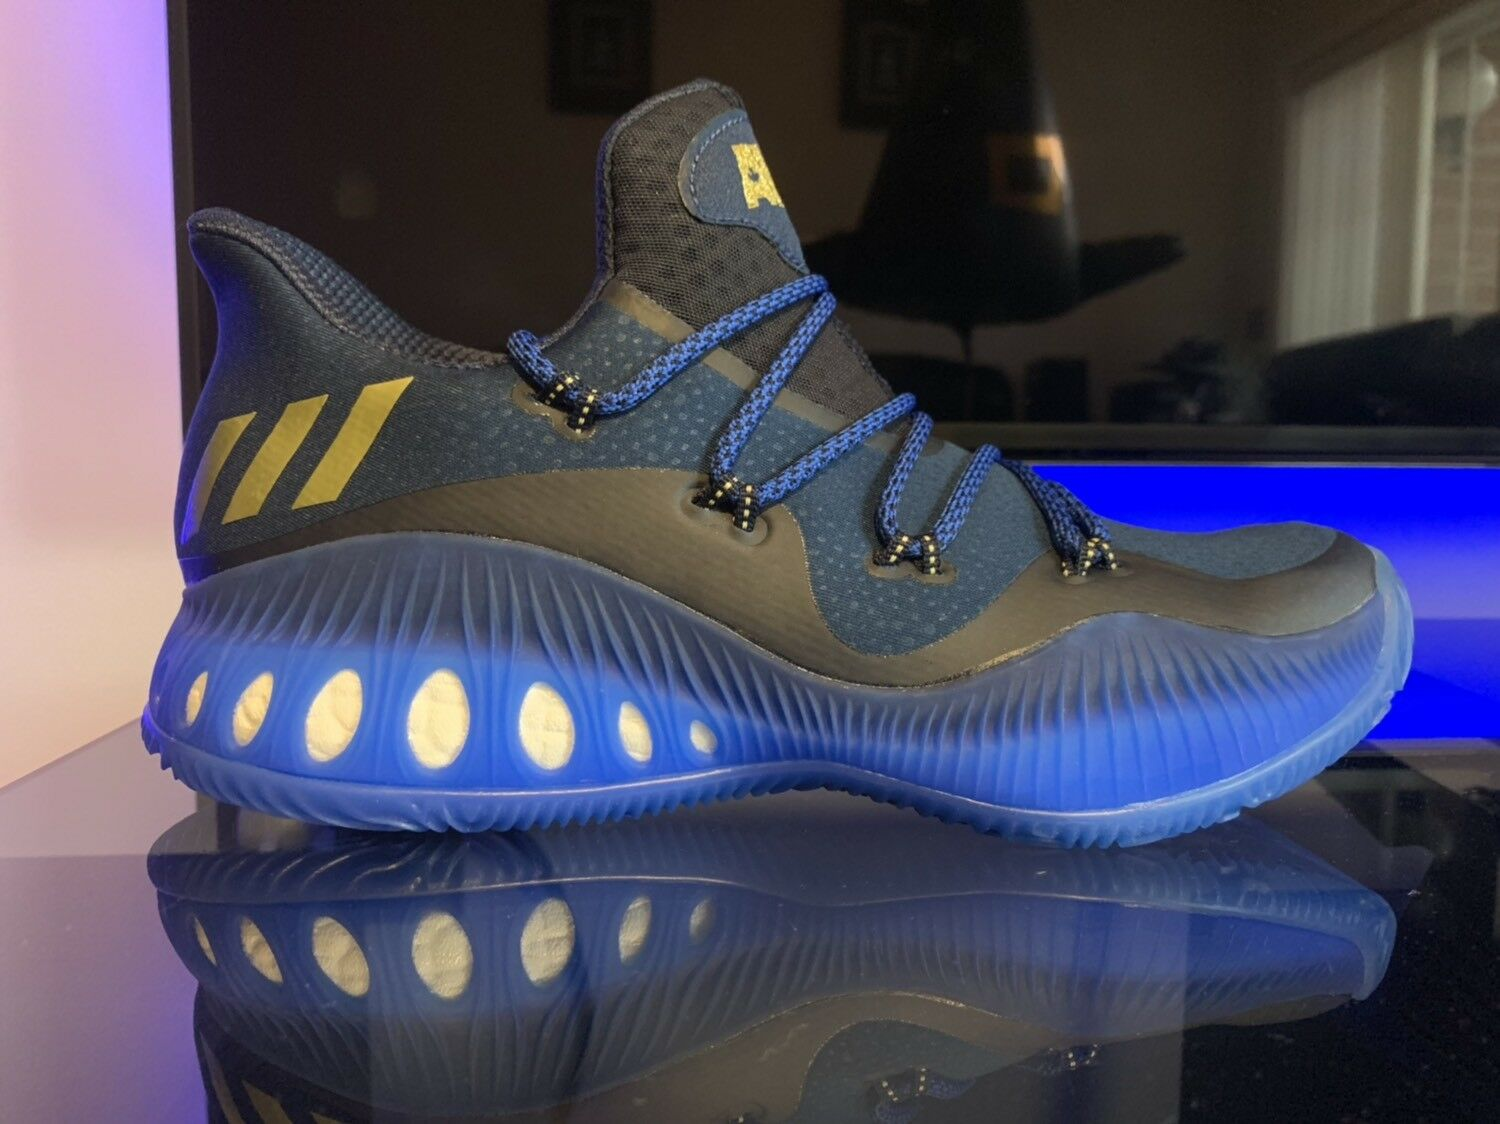 ADIDAS CRAZY EXPLOSIVE LOW BASKETBALL SHOES